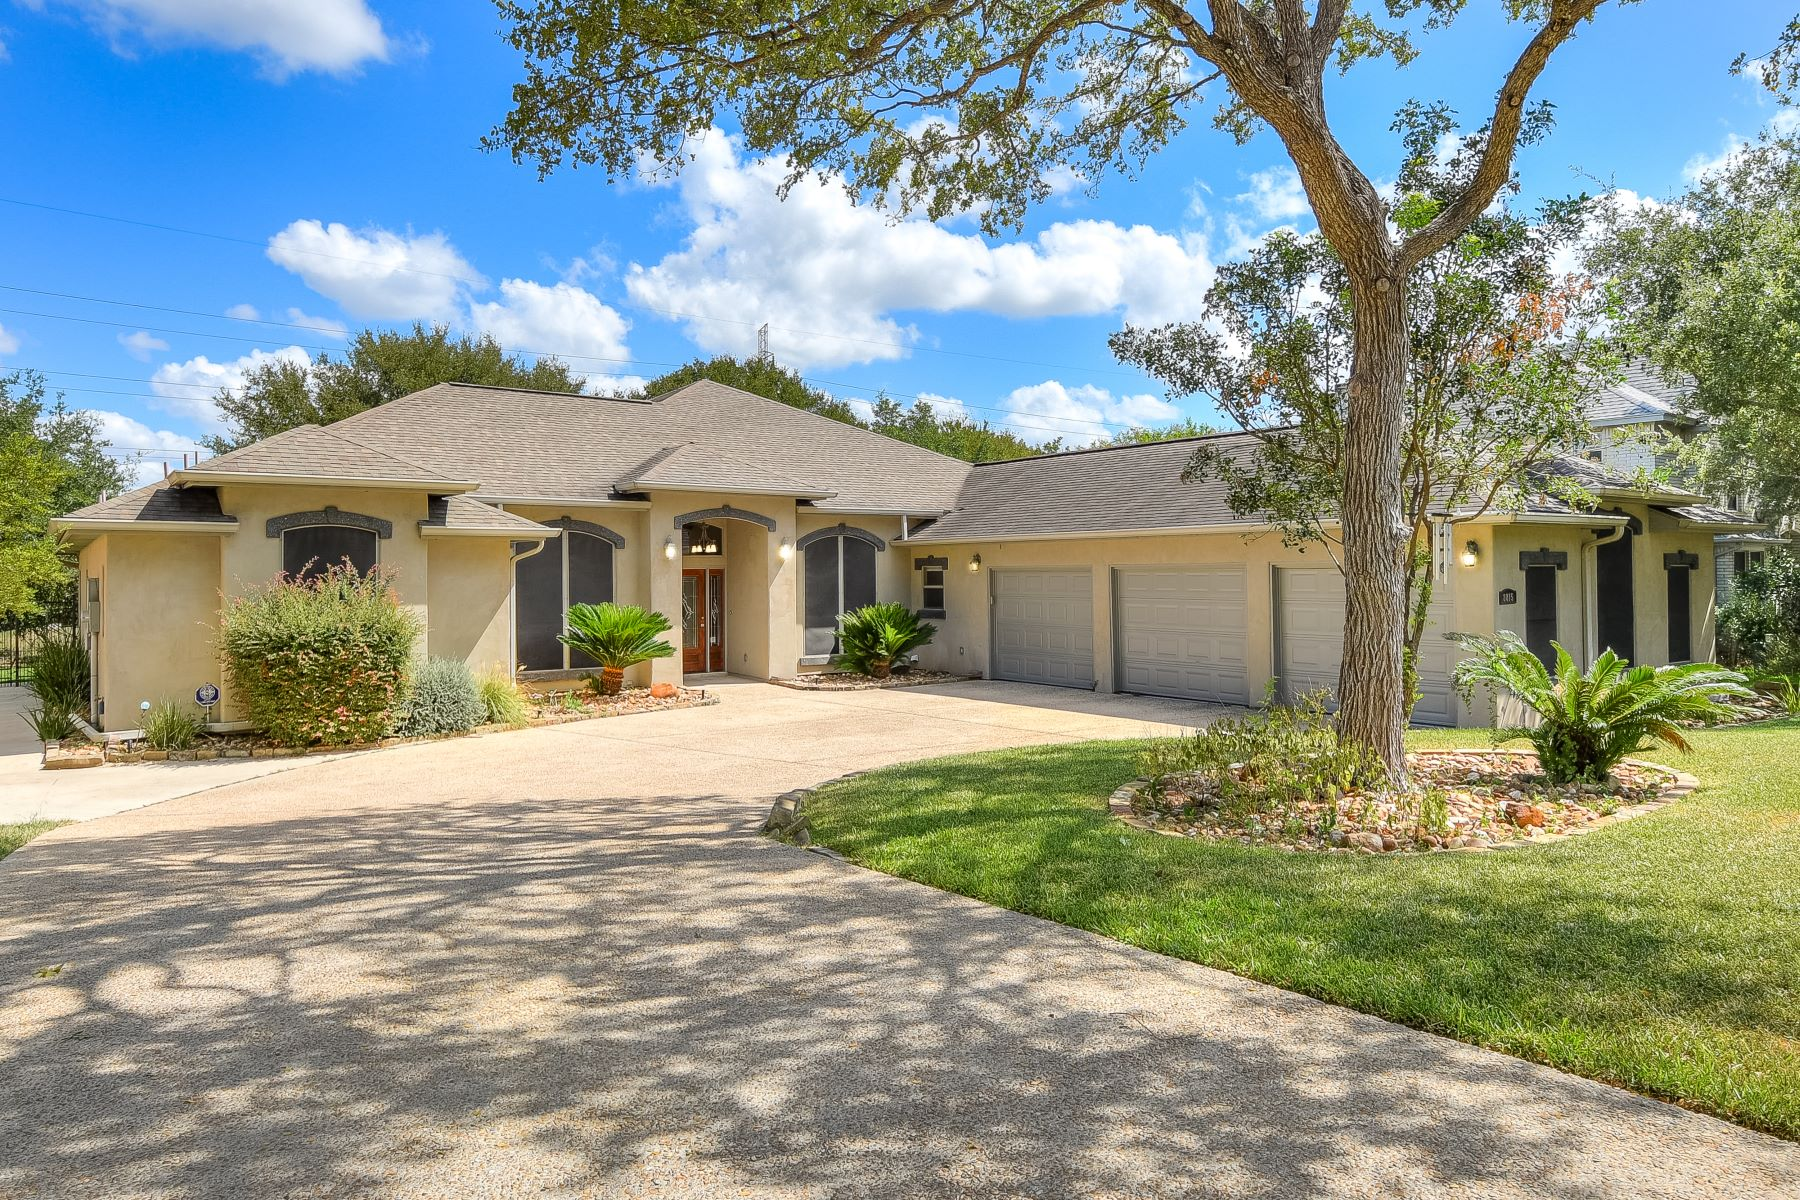 Single Family Homes for Sale at Spacious Home in Olympia Estates 8815 Phoenix Avenue Universal City, Texas 78148 United States